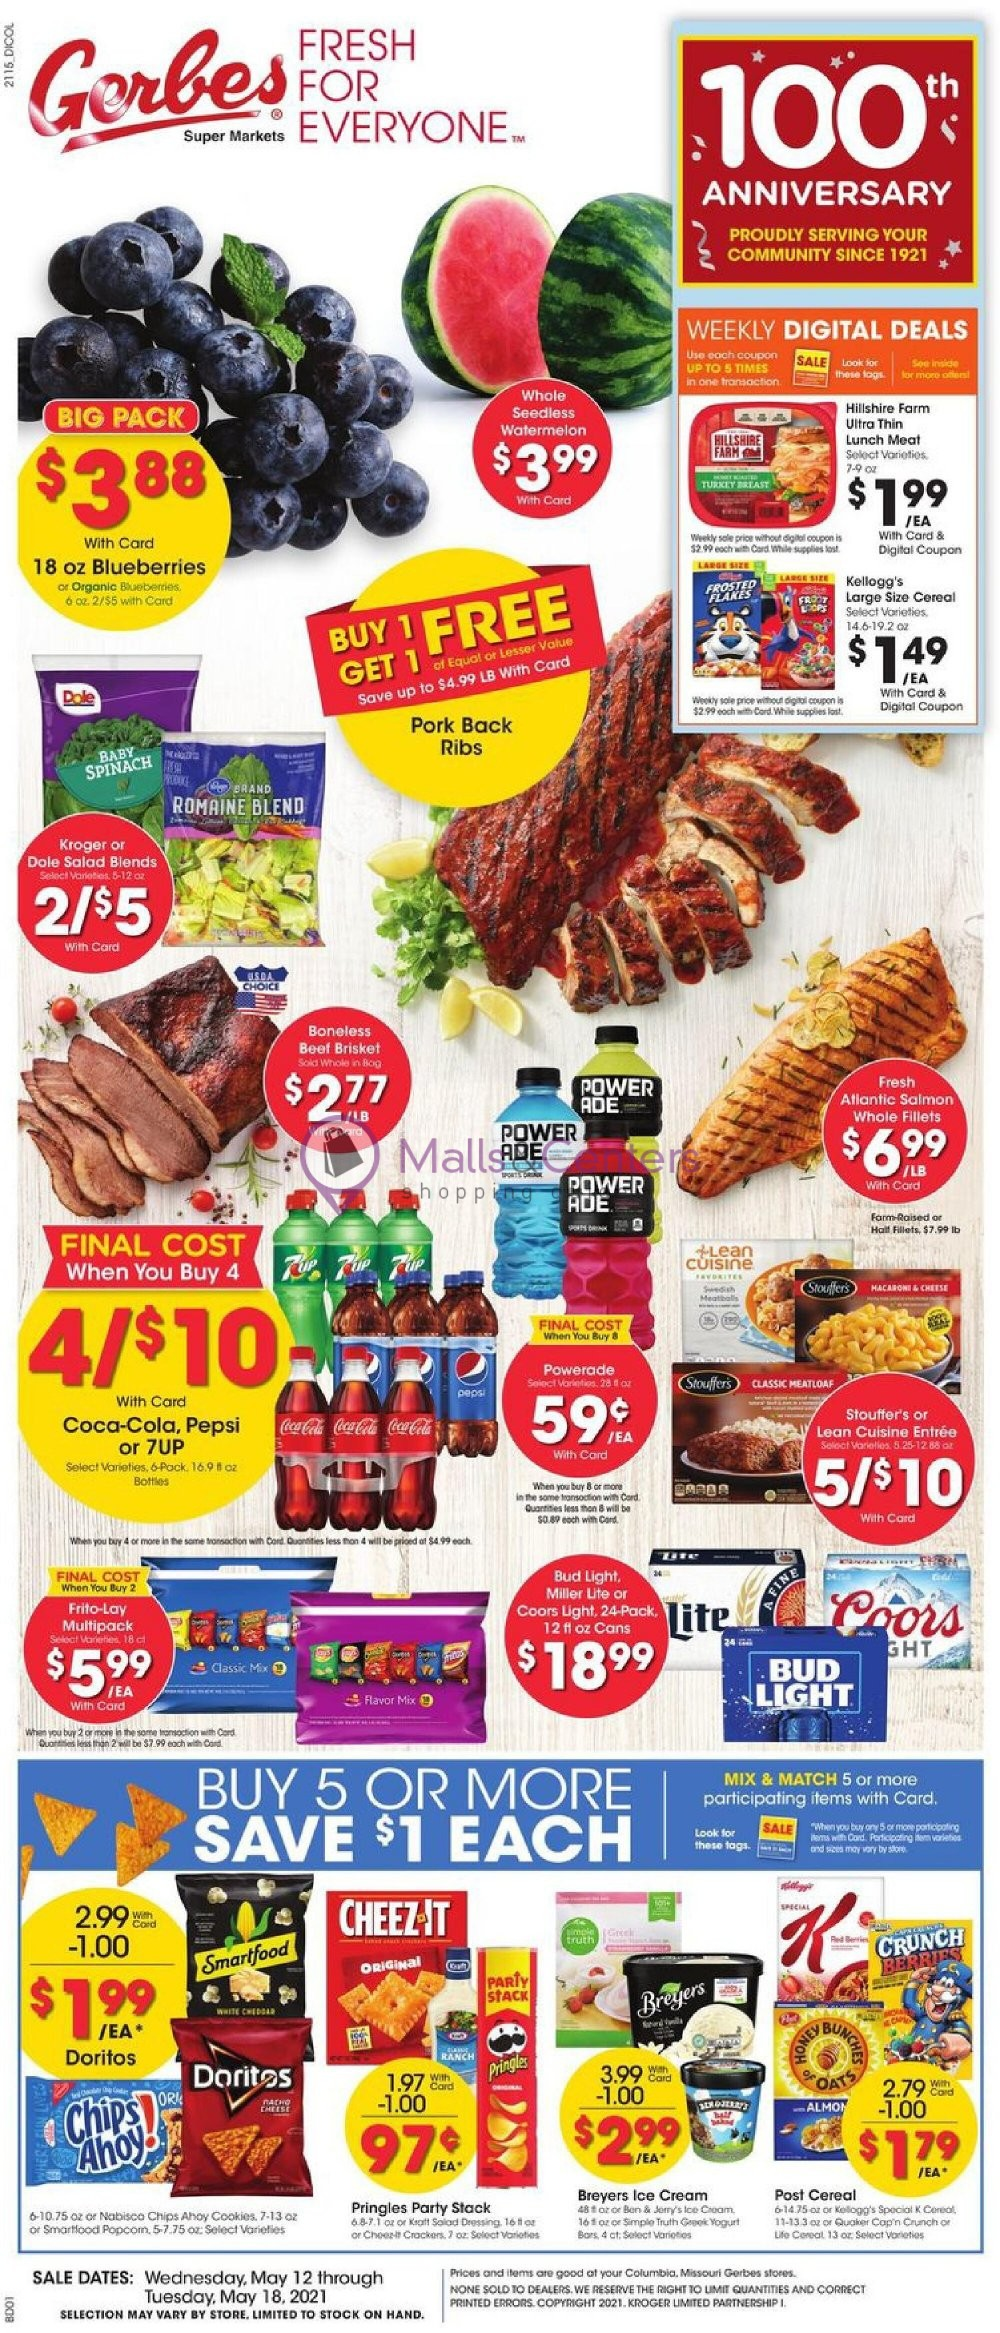 weekly ads Gerbes Super Markets - page 1 - mallscenters.com